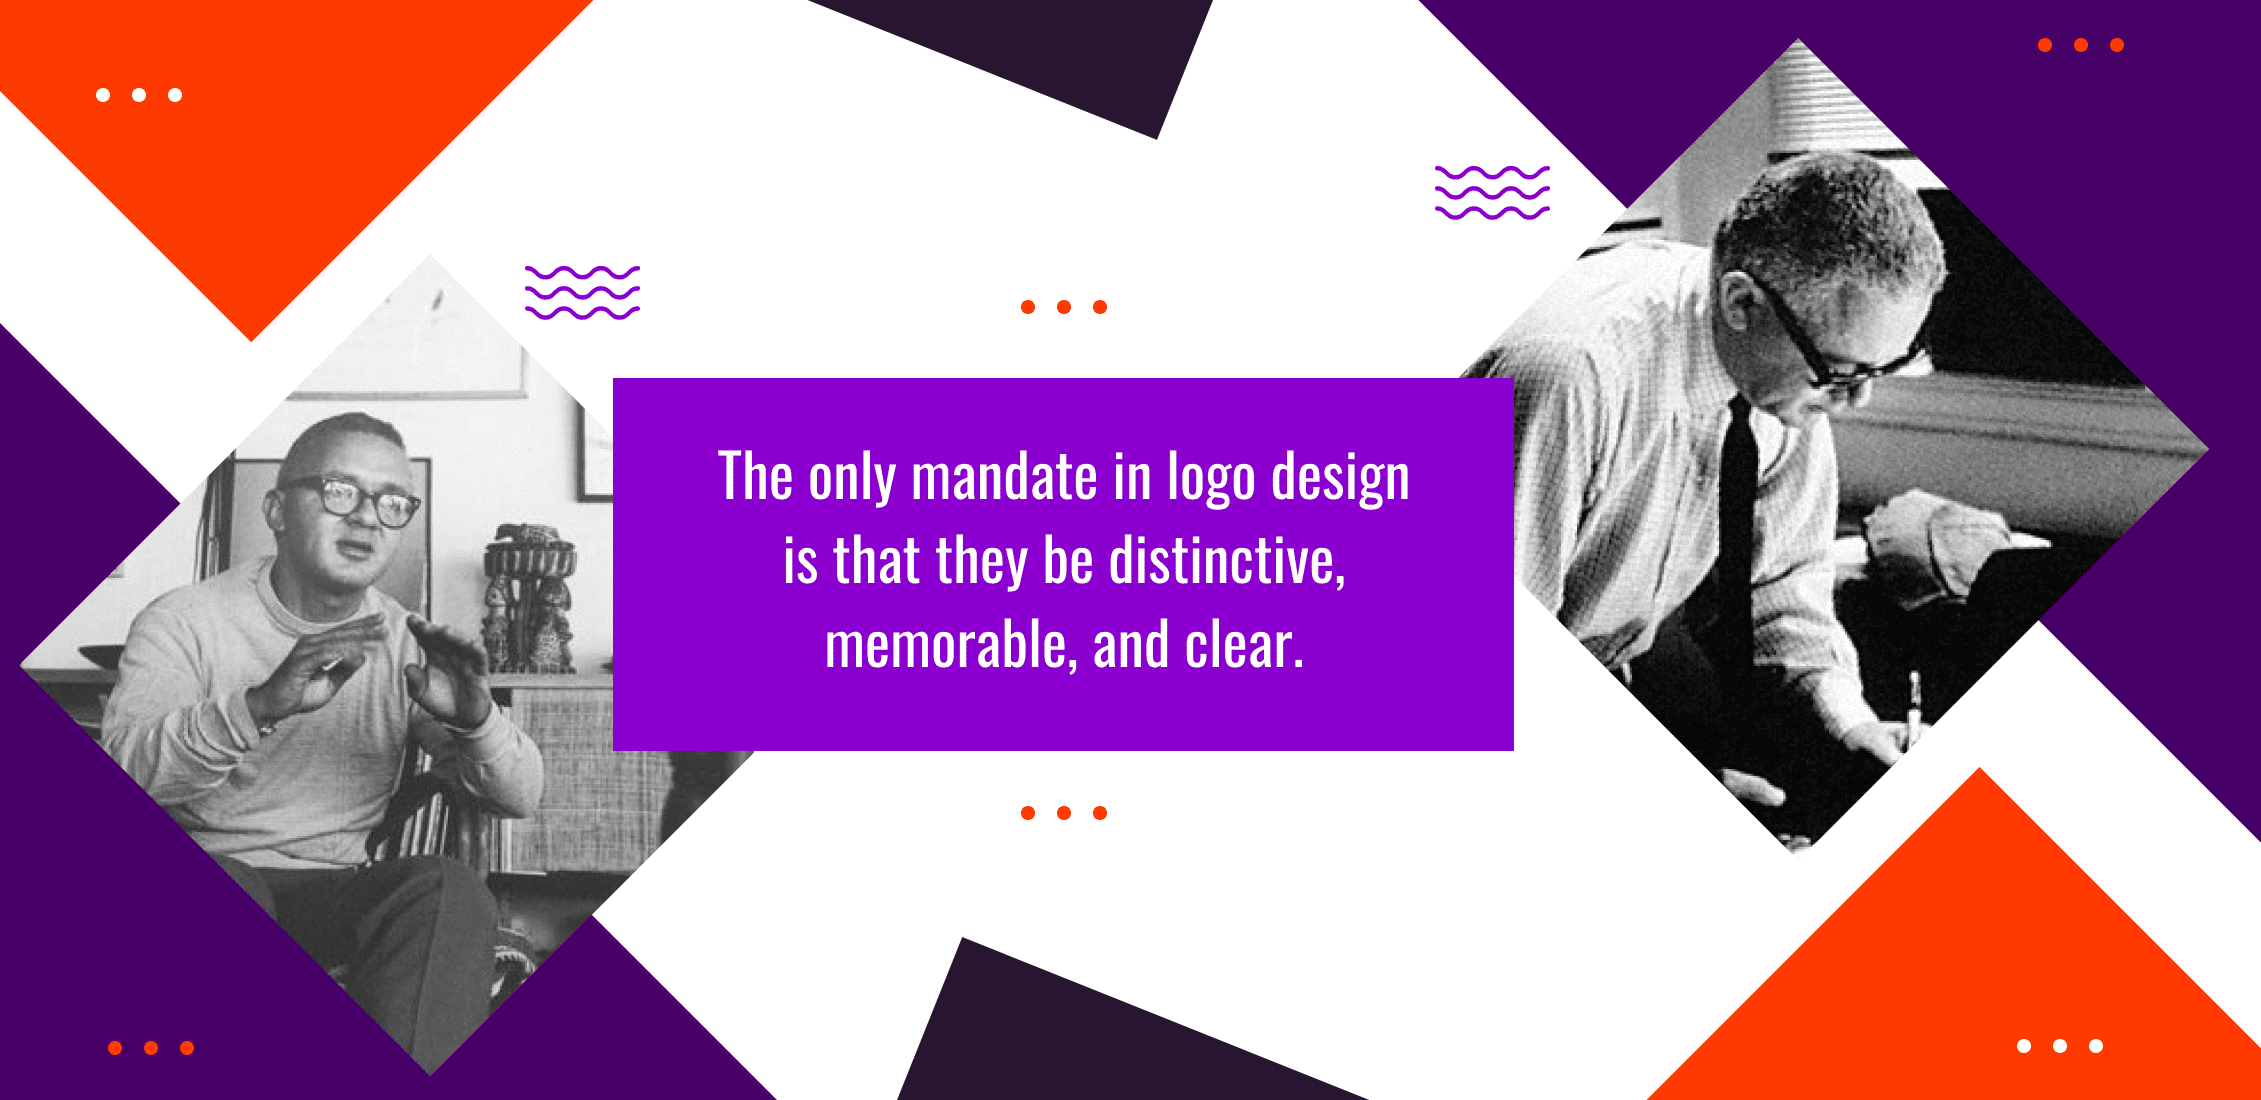 The only mandate in logo design is that they be distinctive, memorable, and clear.